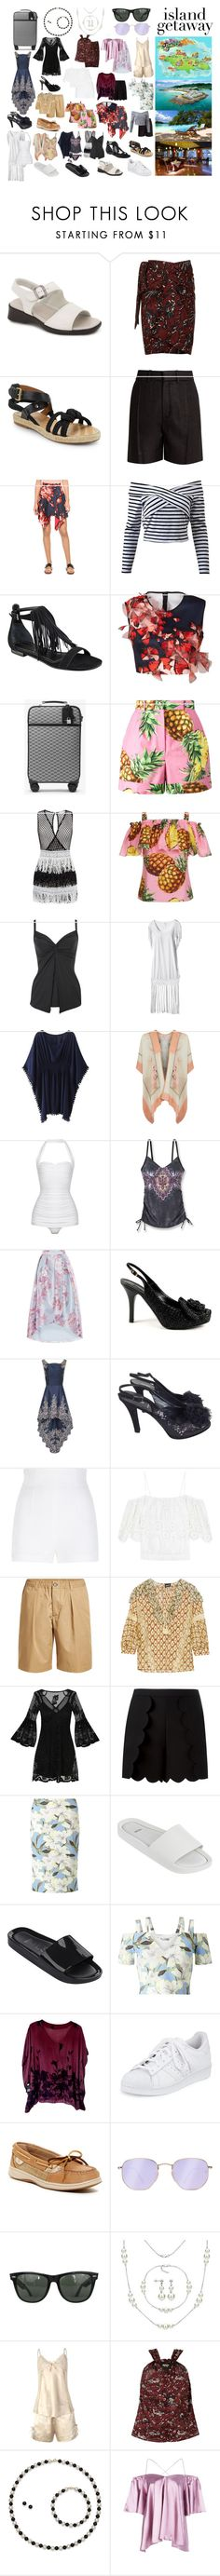 """""""Warm & Wonderful Jamaica Getaway"""" by bethnjulia ❤ liked on Polyvore featuring Munro American, Étoile Isabel Marant, Chloé, Clover Canyon, Kendall + Kylie, prAna, MICHAEL Michael Kors, Dolce&Gabbana, Norma Kamali and Miraclesuit"""